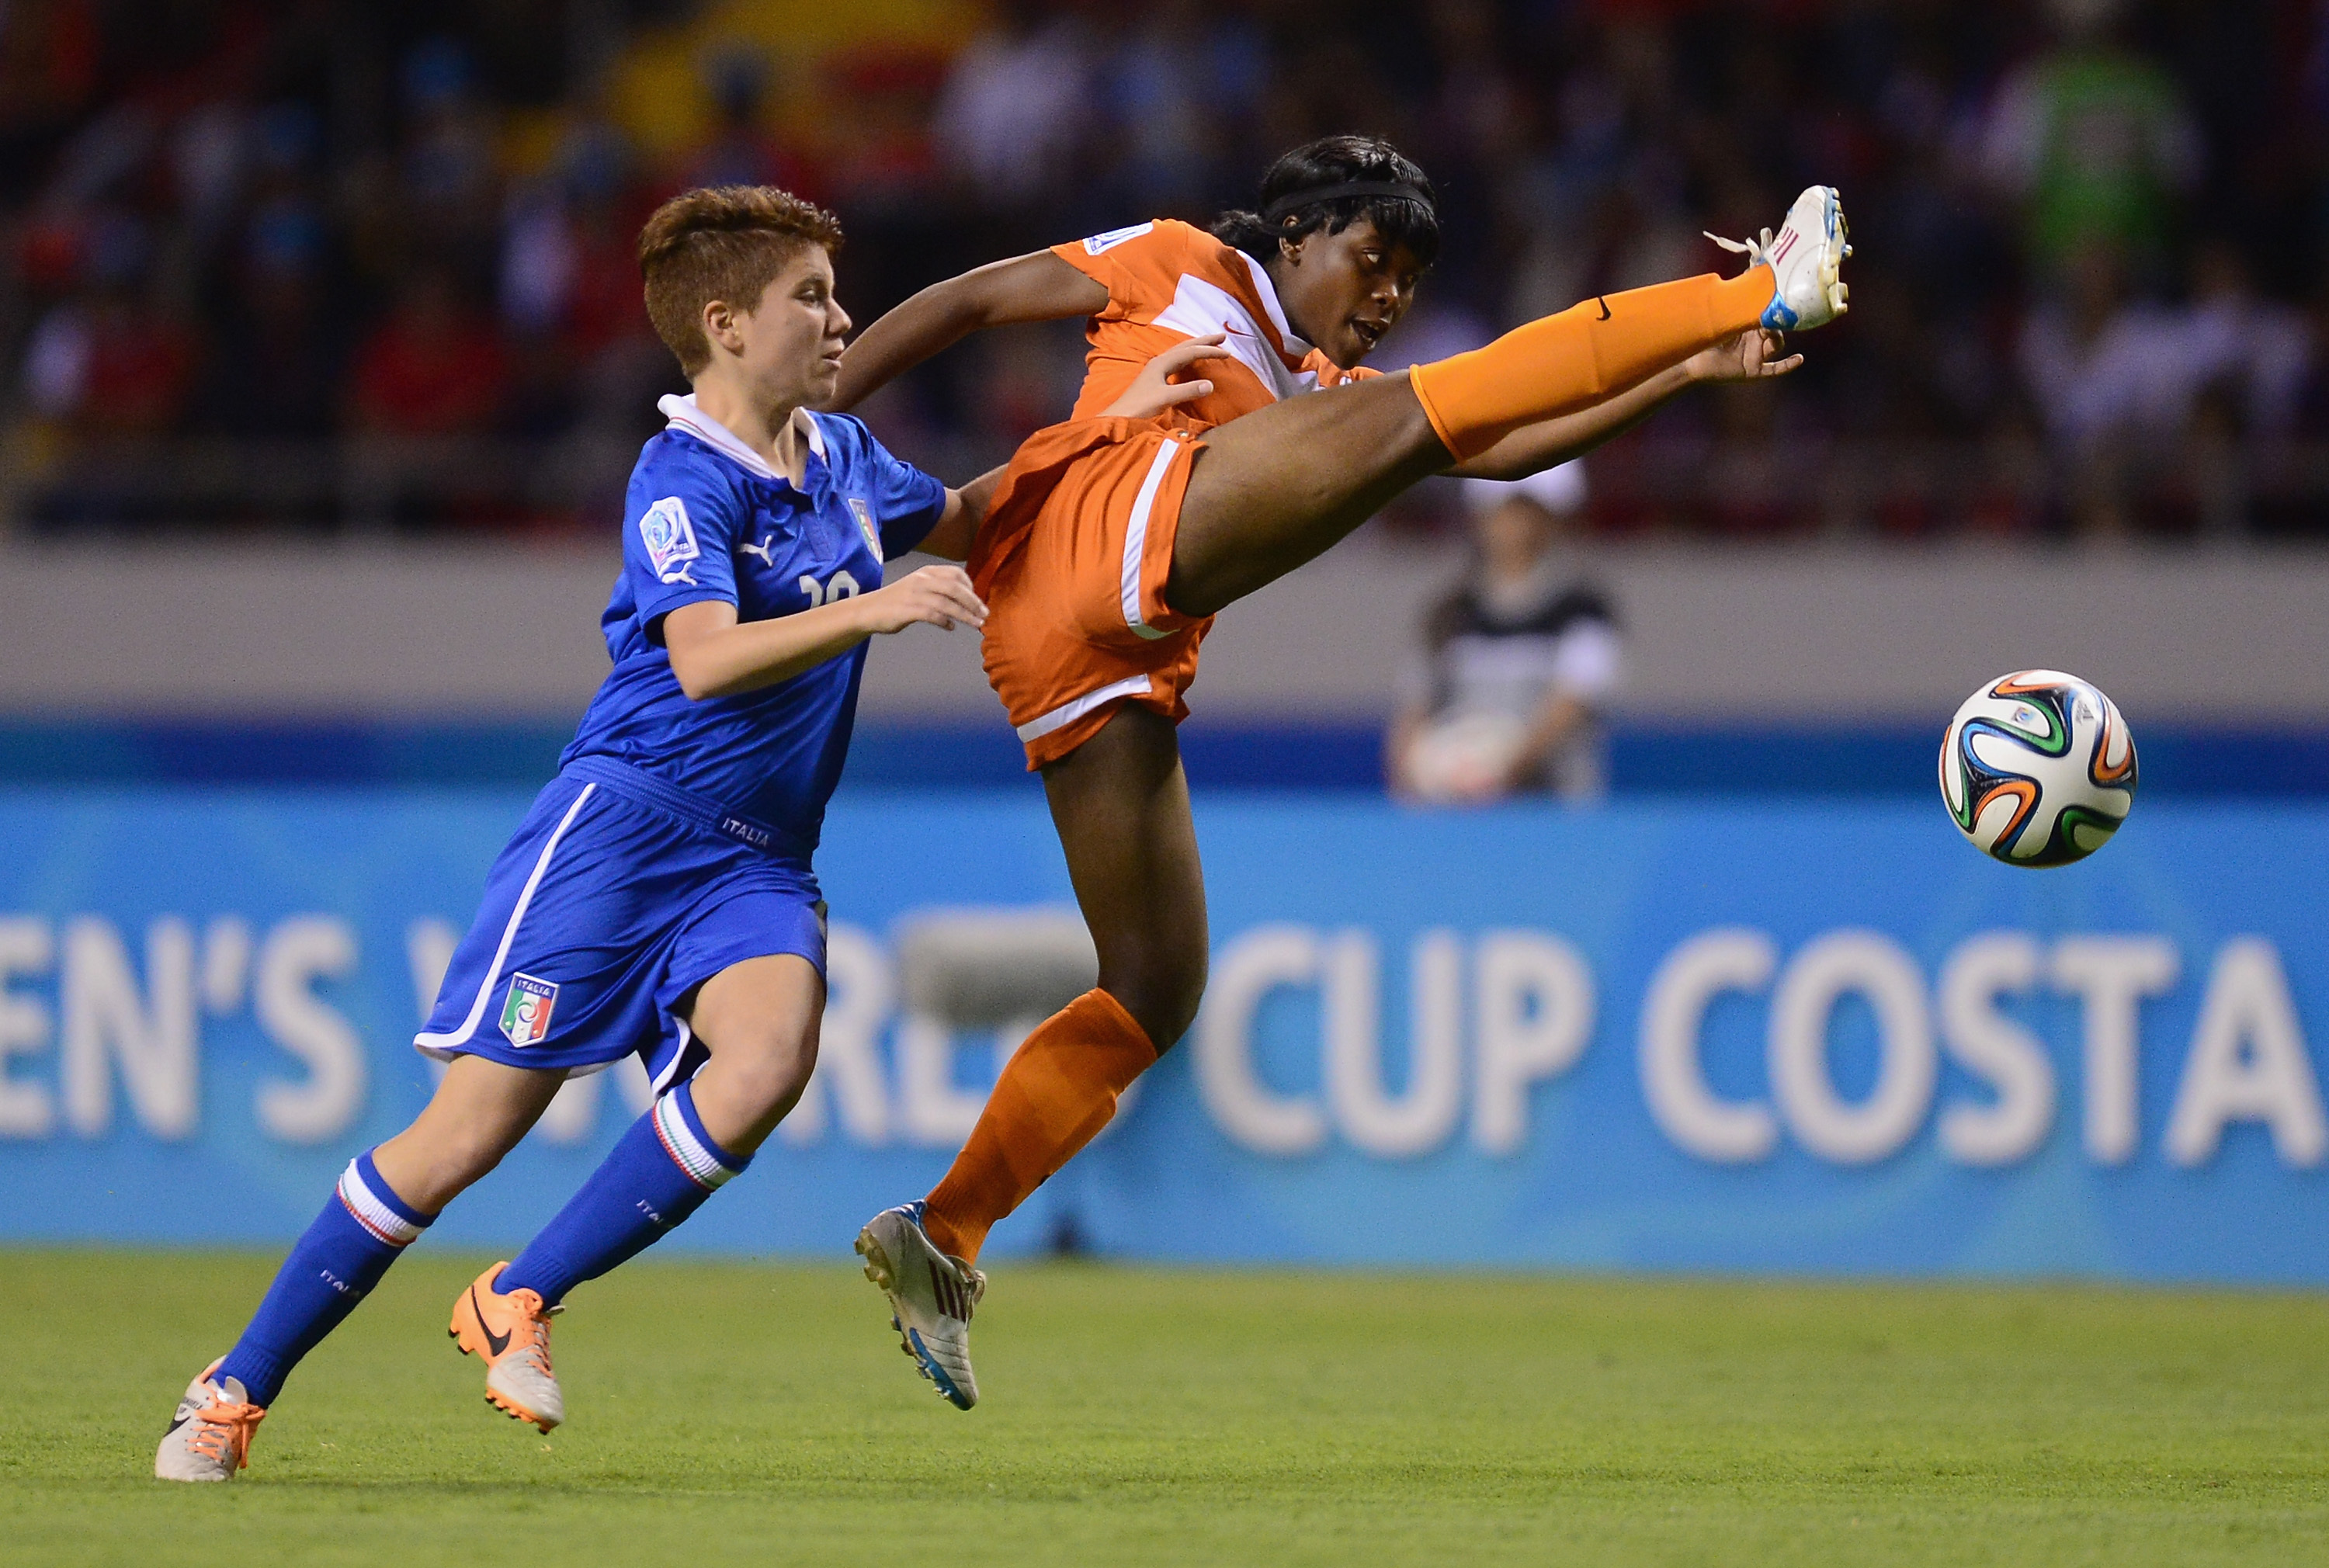 Italy v Zambia: Group A - FIFA U-17 Women's World Cup Costa Rica 2014